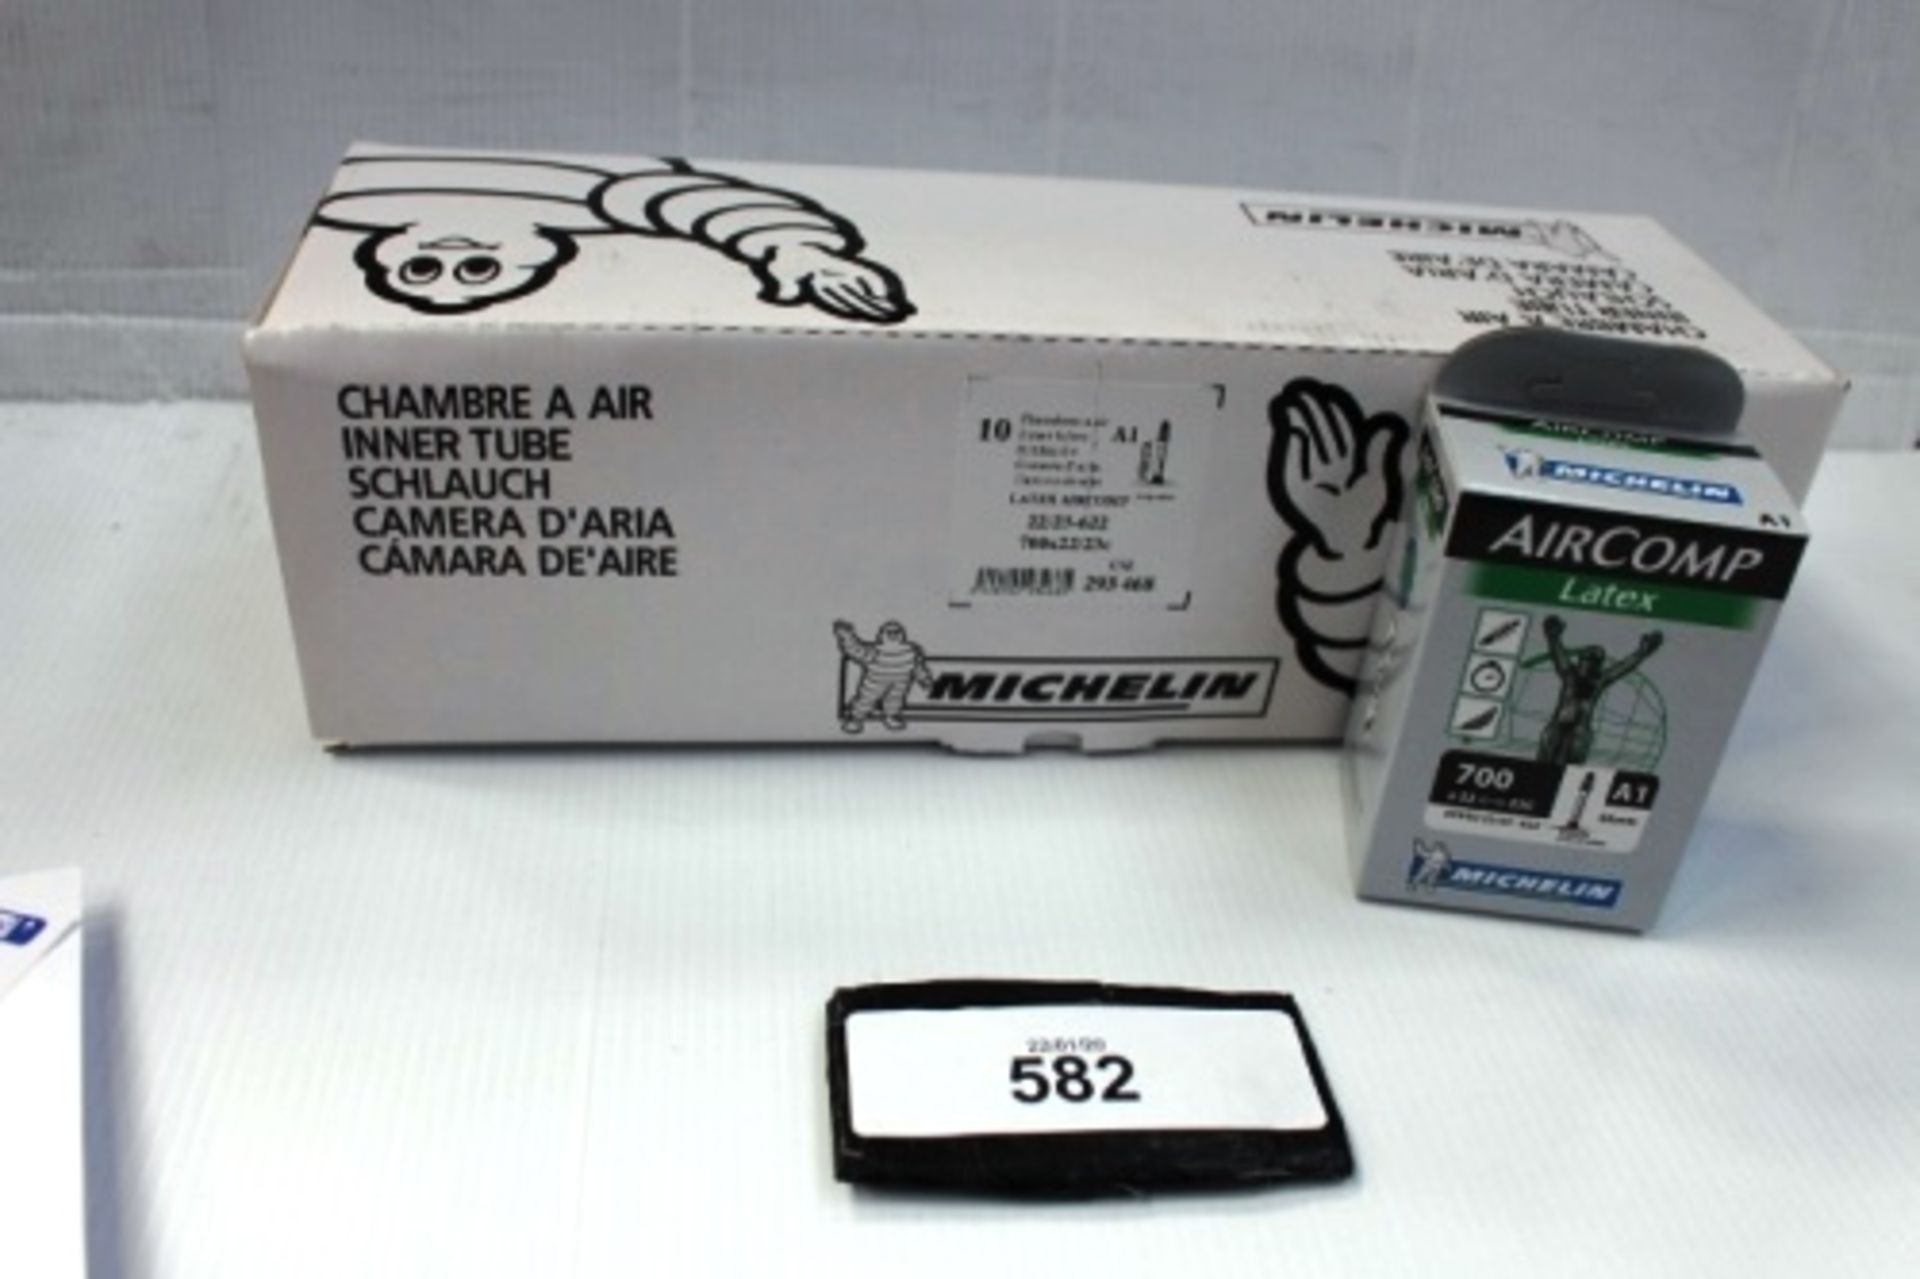 Lot 582 - 10 x Michelin Air Comp Latex 60mm 700 x 22/23C inner tubes - New in box (ES13)